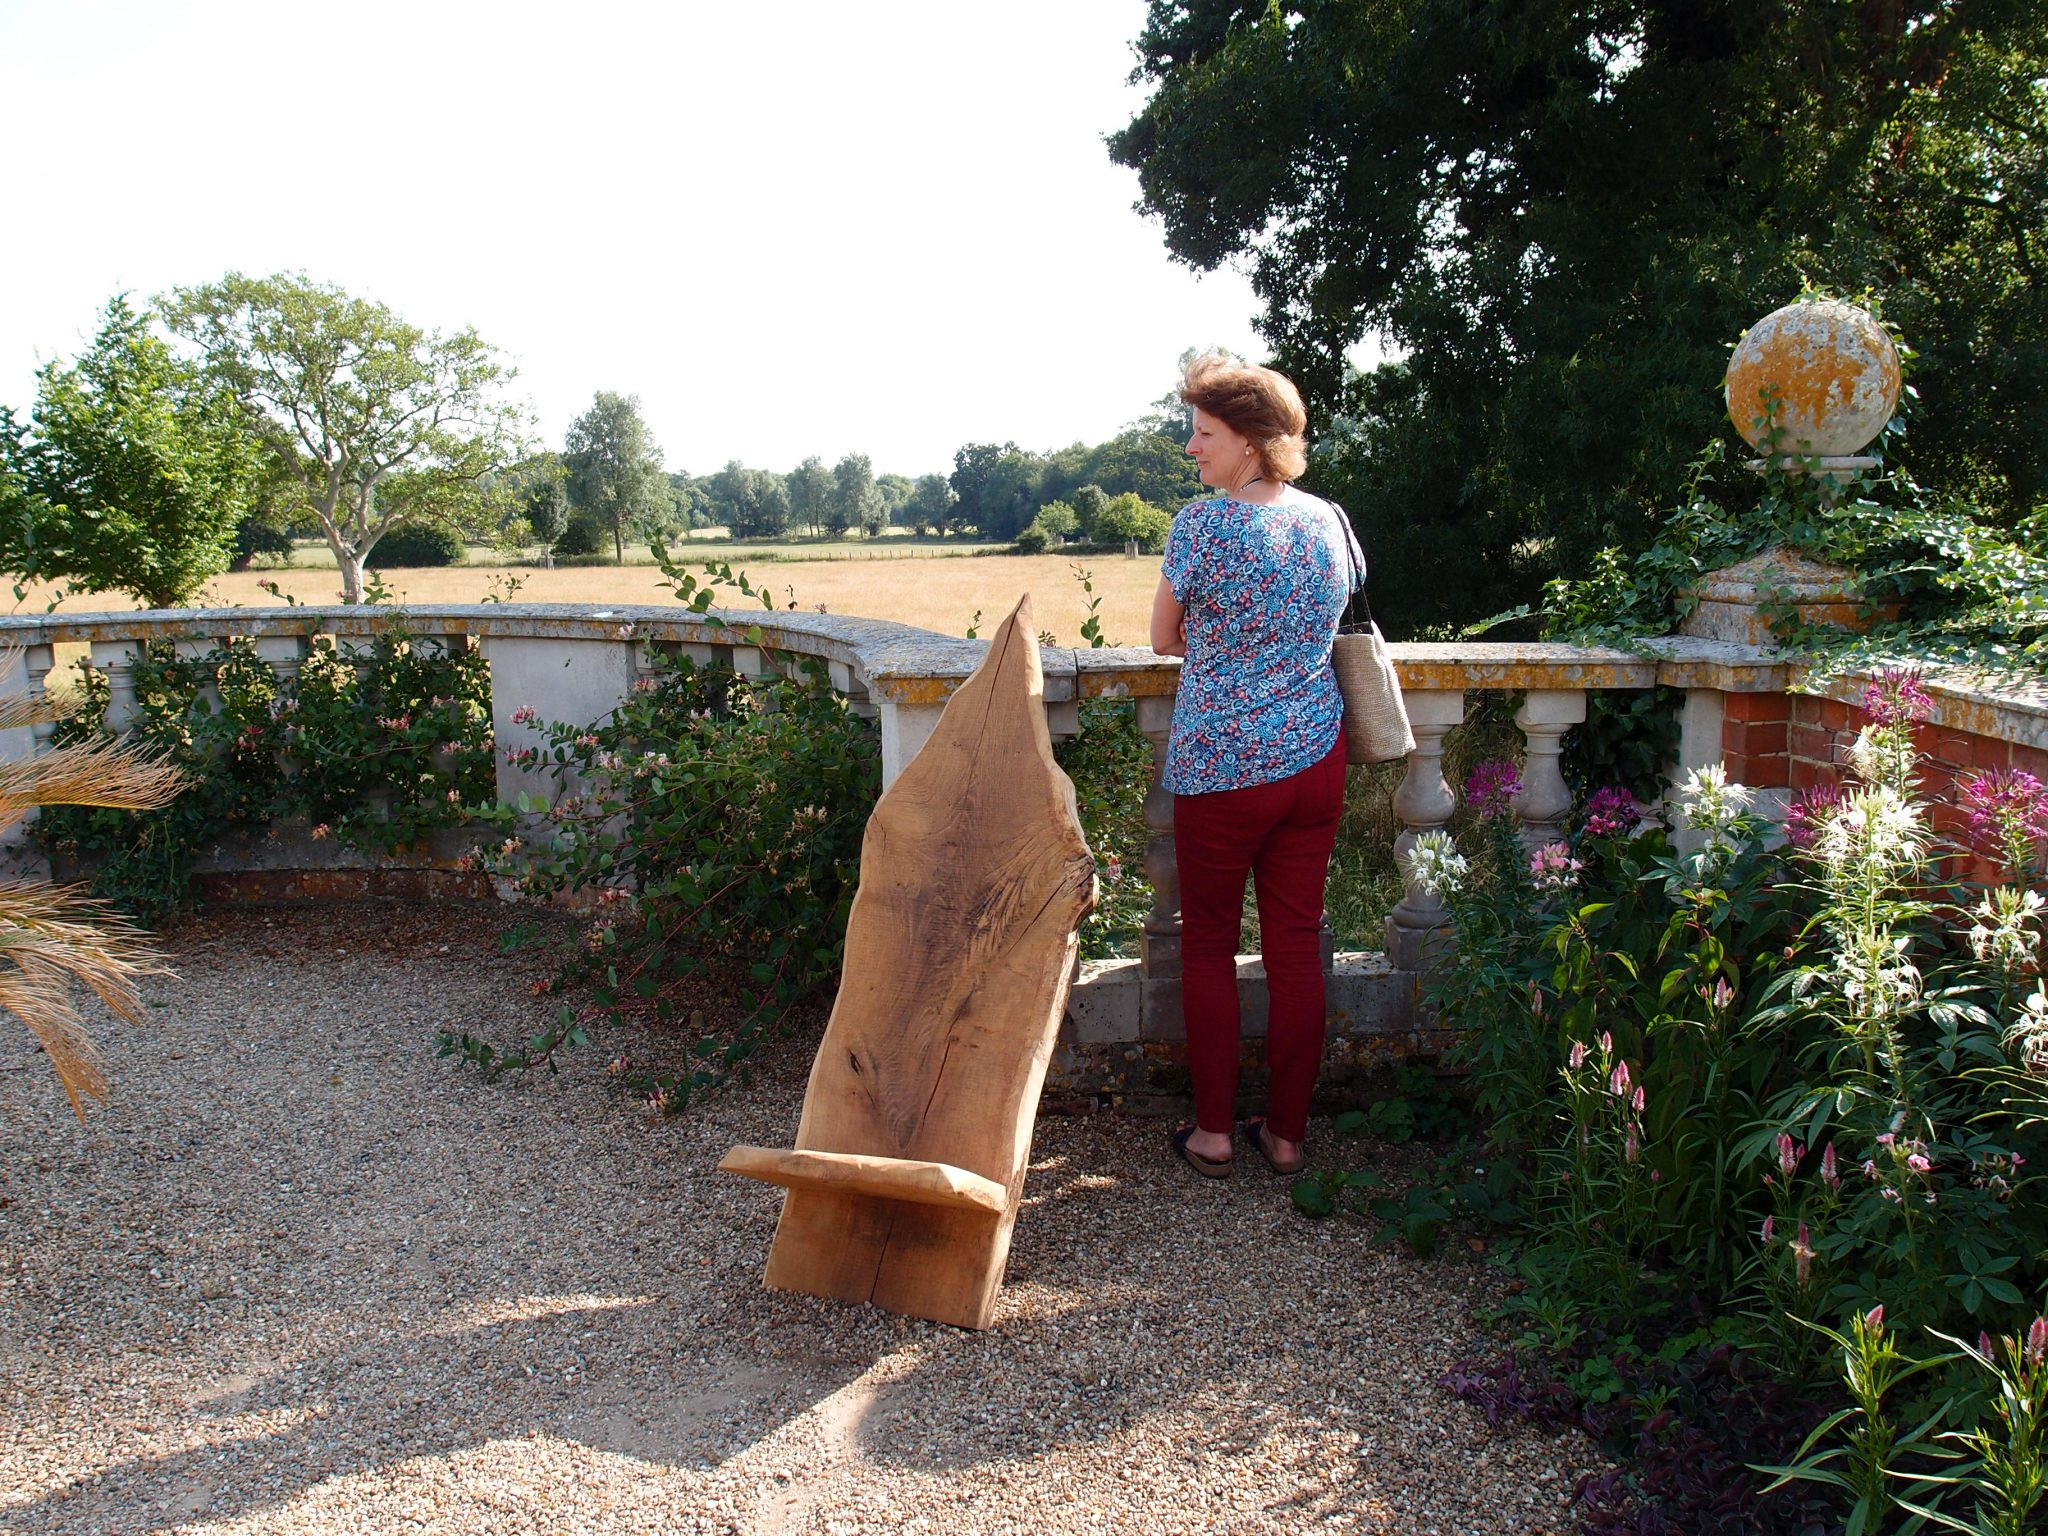 Free-form Wooden Chairs look right at home on the Belvedere. Amanda enjoys the afternoon's warm breeze.